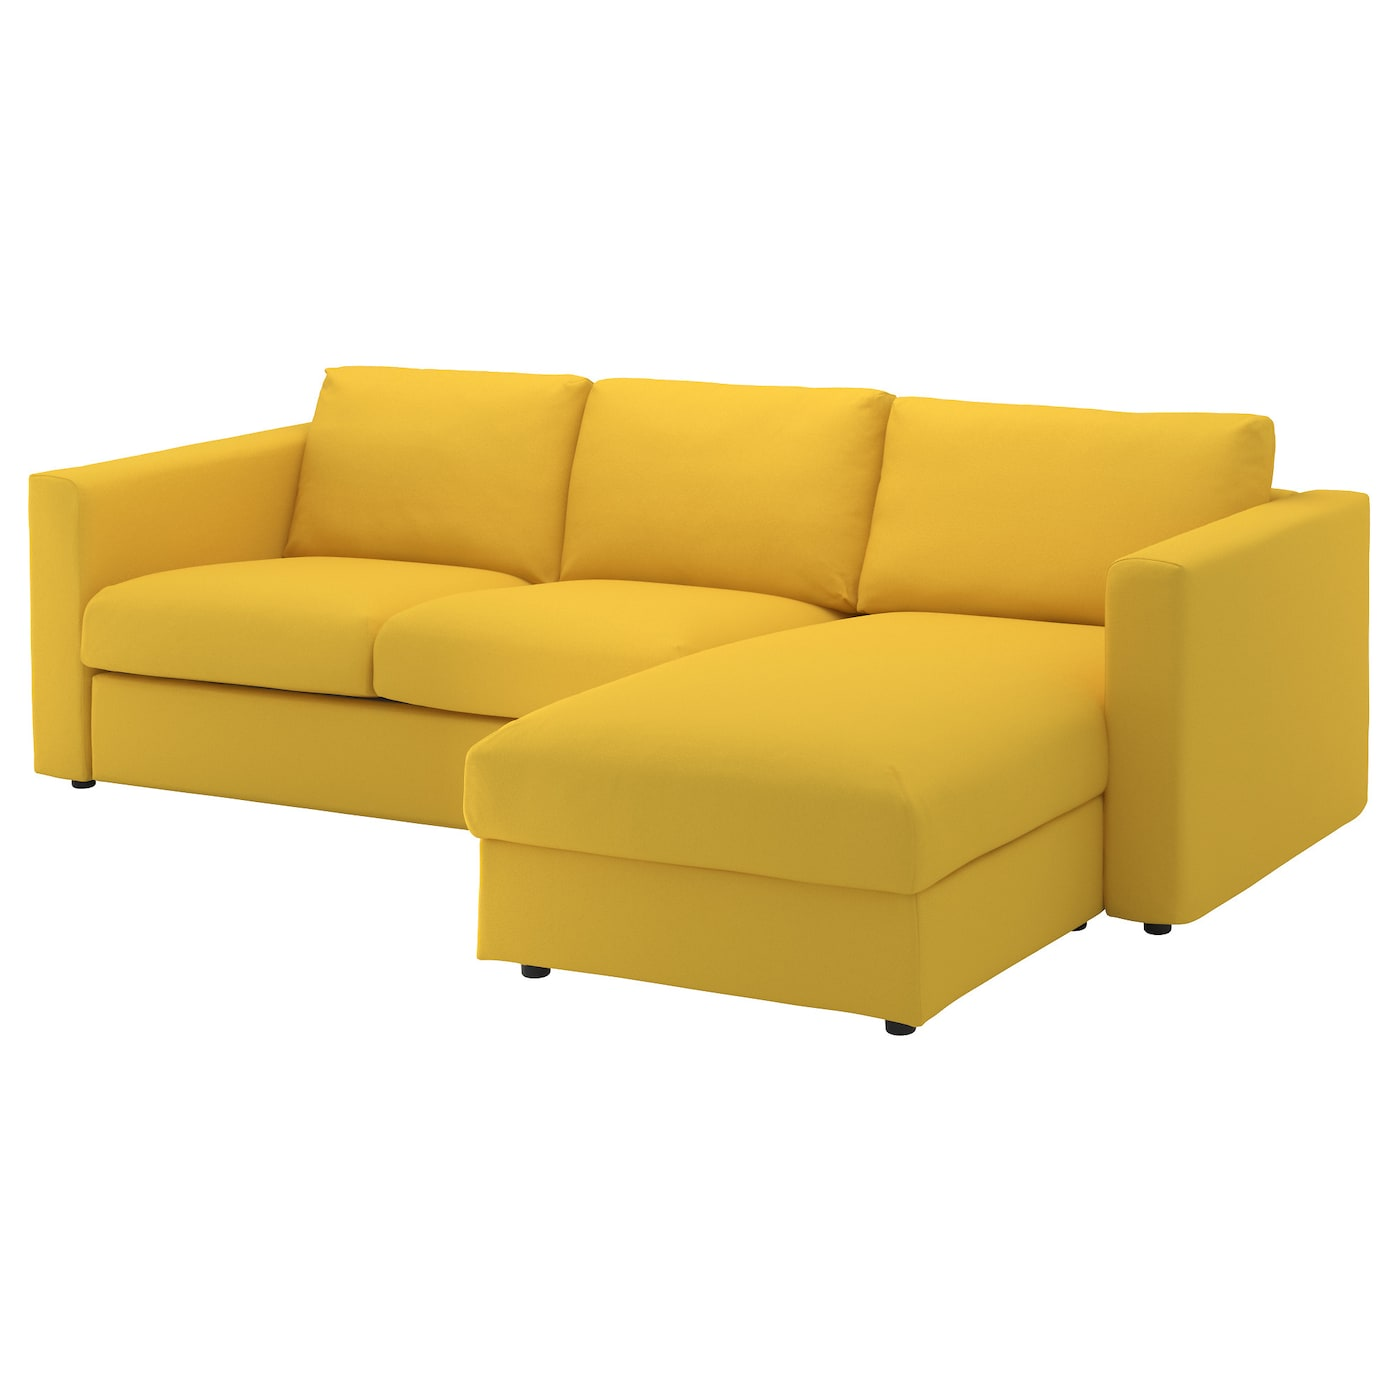 Fabric sofas ikea ireland dublin - Chaise empilable ikea ...